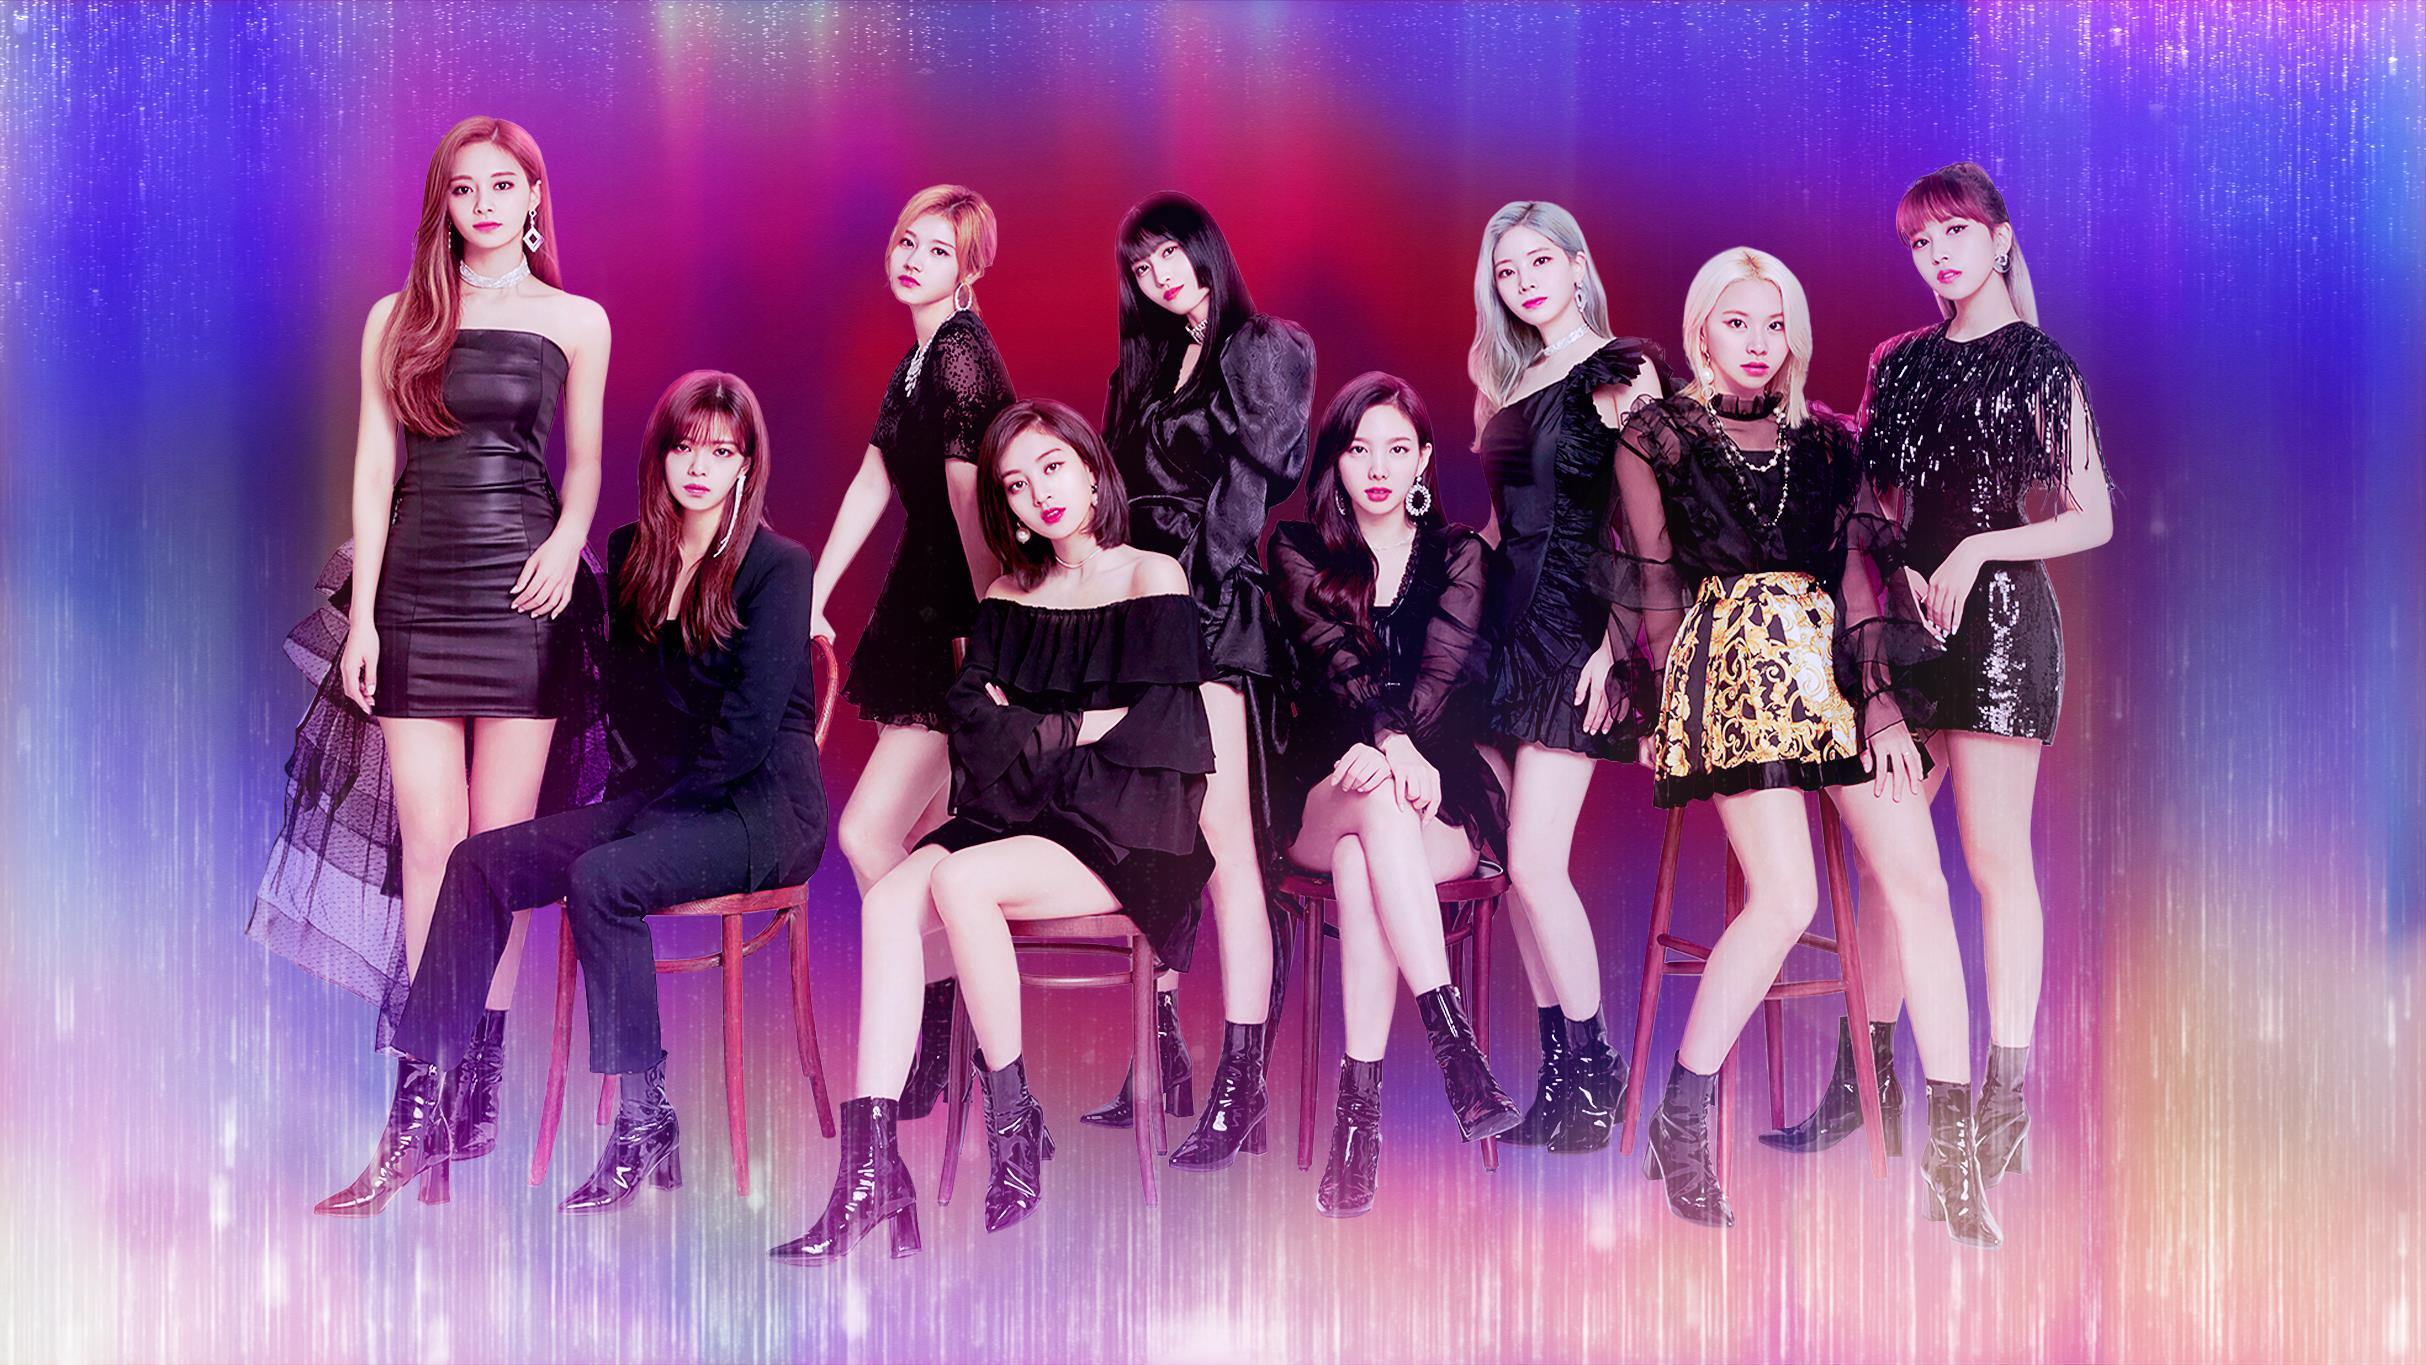 Buy Tickets For Twice World Tour 2019 Twicelights In Singapore At